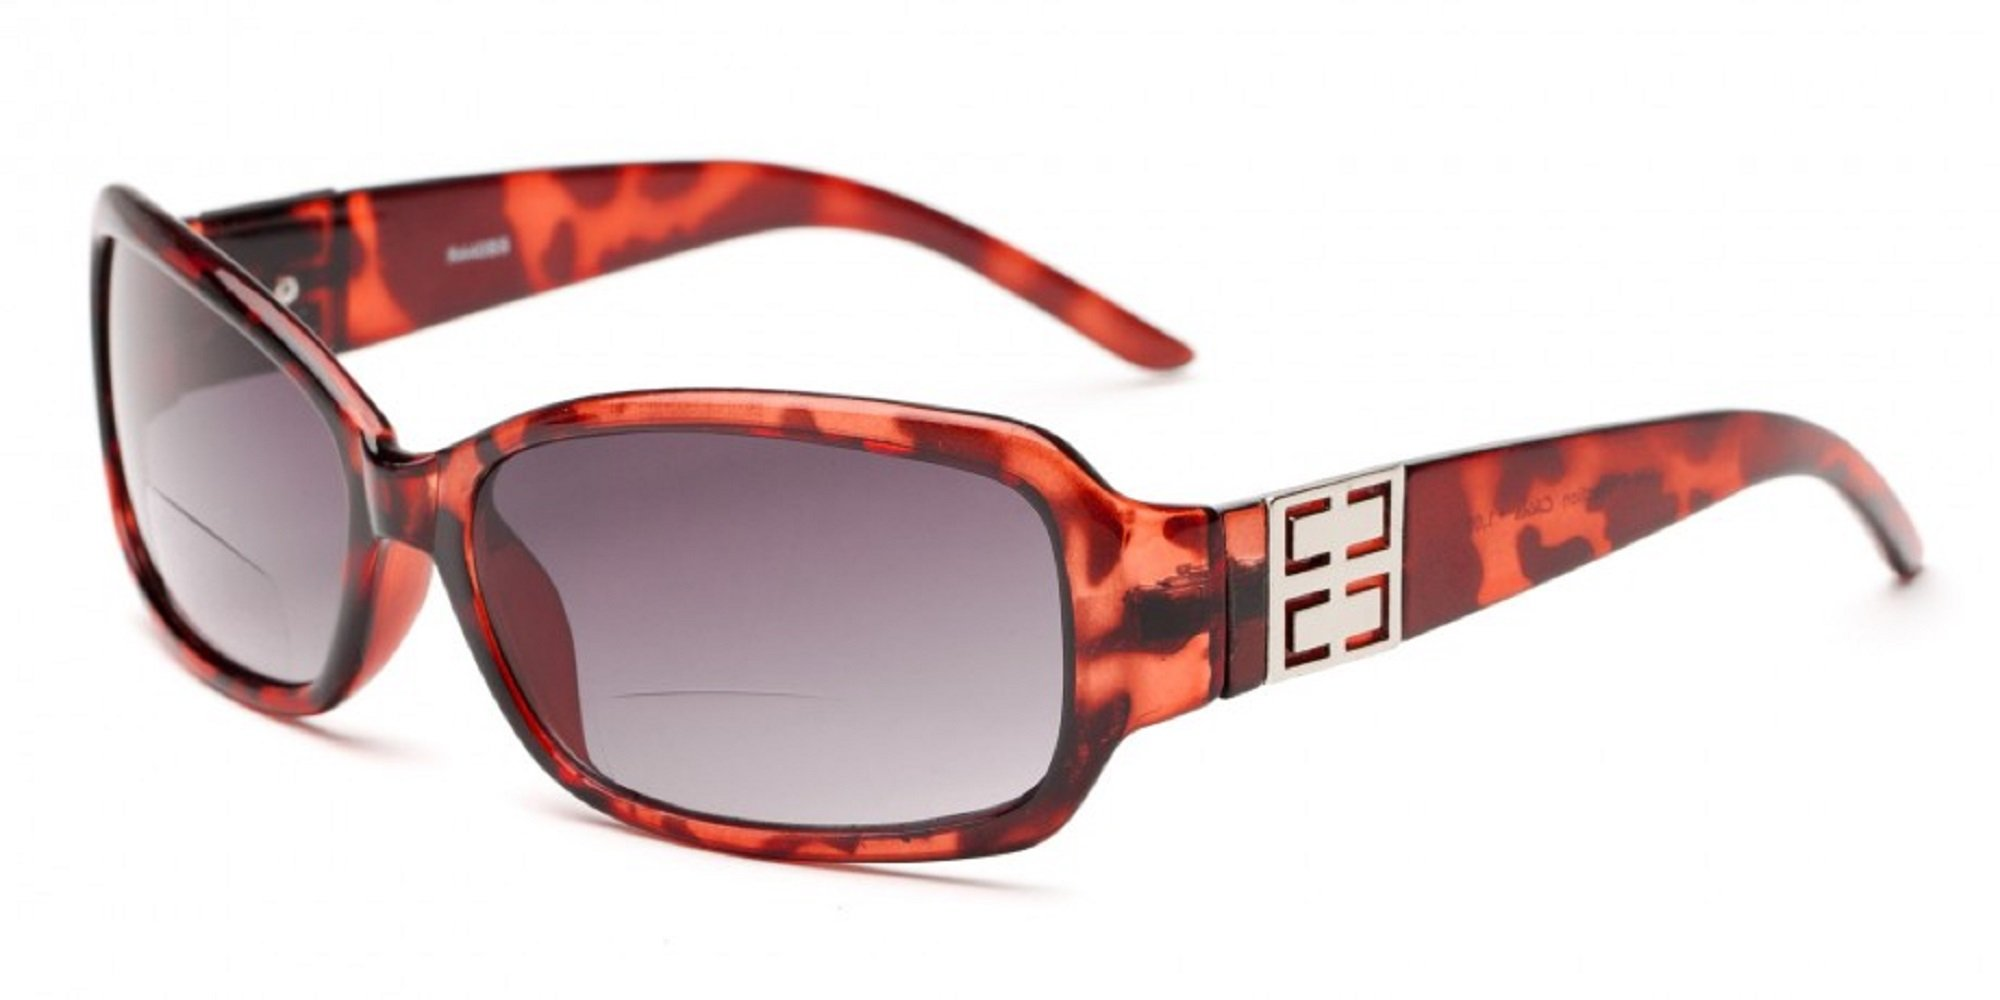 Readers.com The Karissa Bifocal Sun Readers for Women, Womens Rectangular Reading Glasses Sunglasses, Rectangle Full Frame Readers + 1.75 Pink Tortoise (Microfiber Cleaning Carrying Pouch Included)